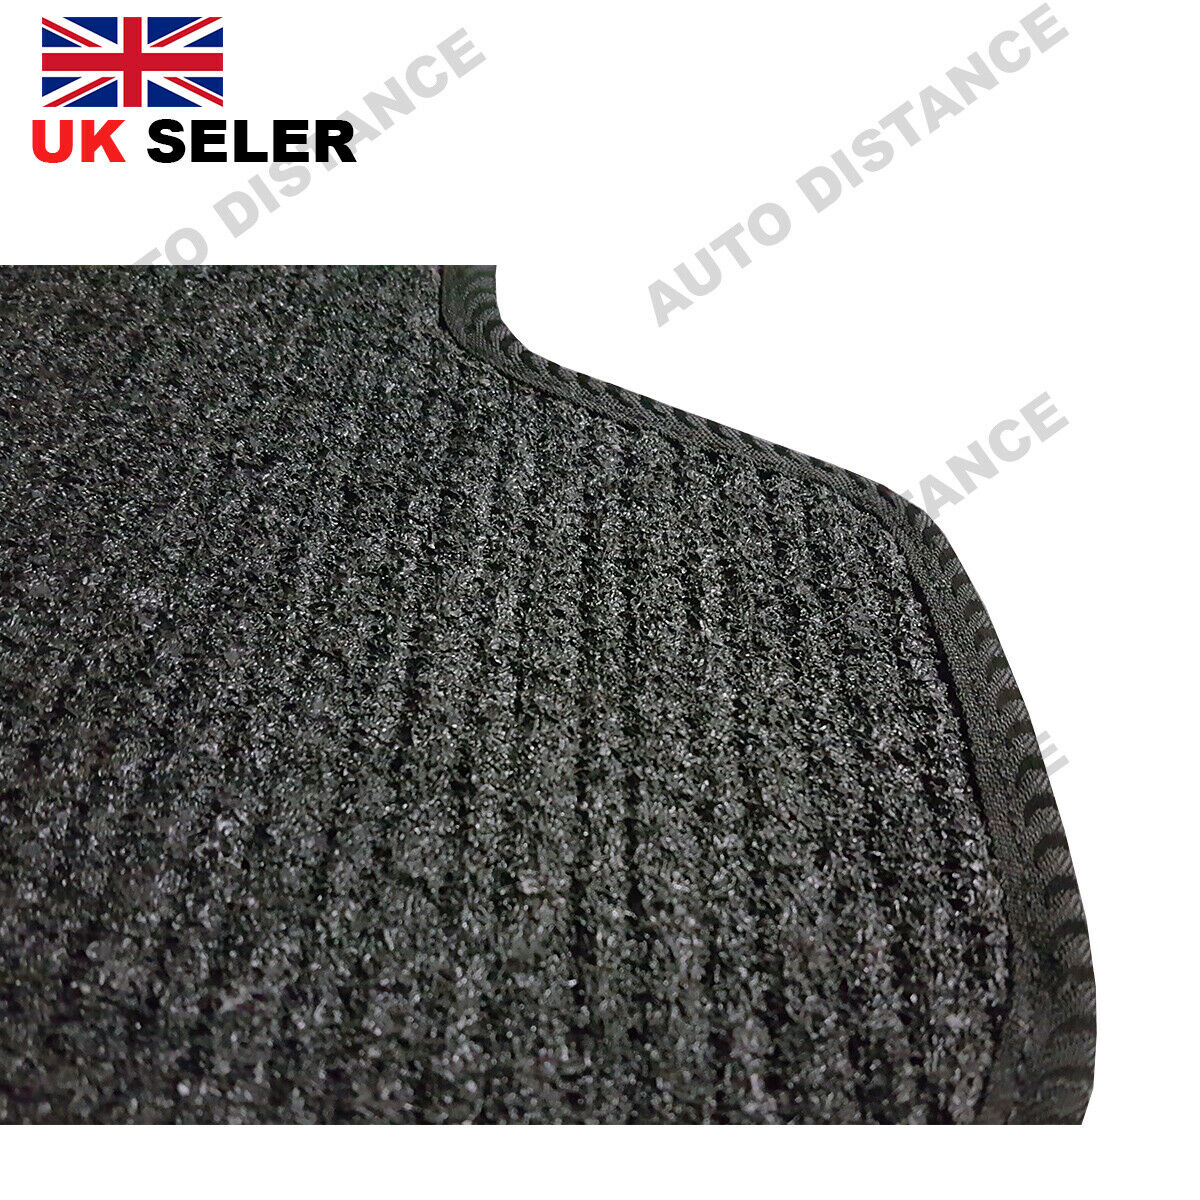 Tailored-Quality-Black-Carpet-Car-Mats-With-Heel-Pad-Nissan-Leaf-2014-2017 thumbnail 7